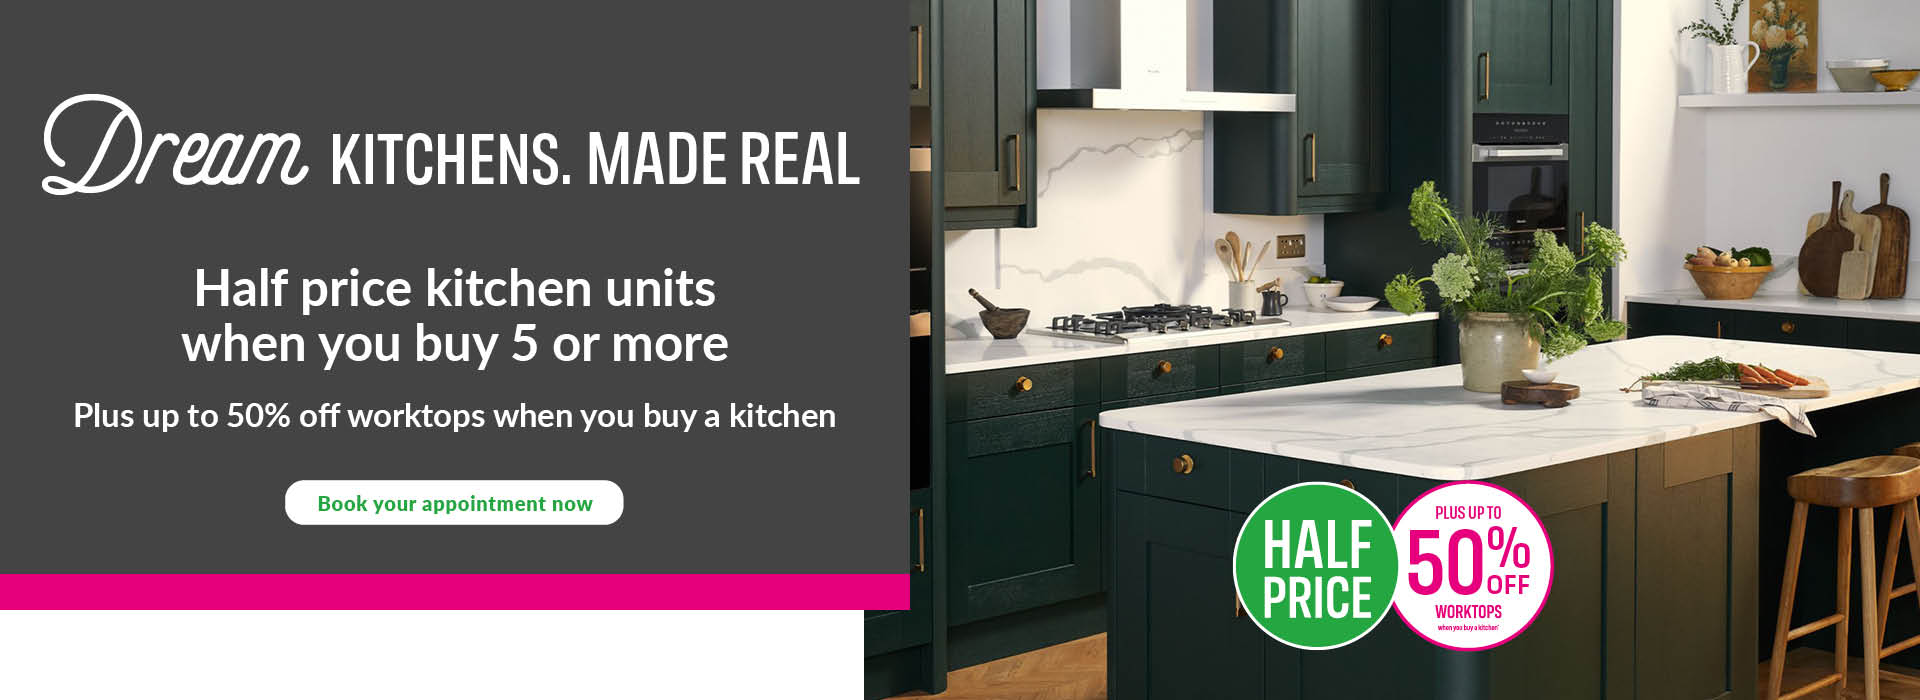 Dream Kitchens. Made Real. Get 50% off when you kick off your kitchen renovation. Half price when you buy 5 or more units. Plus 15% off Homebase Kitchens.